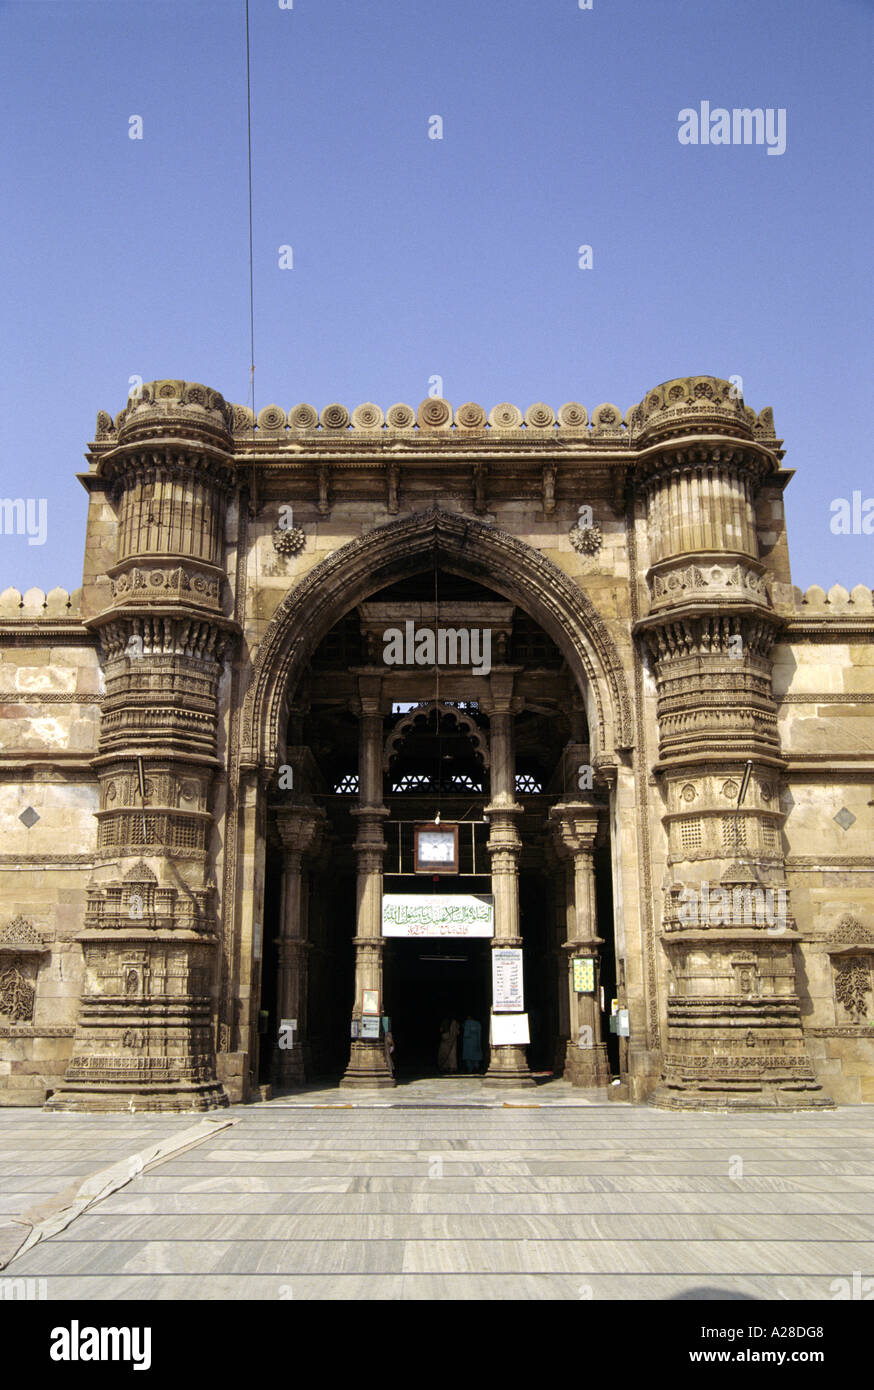 View of the ornately carved entrance to the Jama or Jami Masjid Ahmedabad India - Stock Image